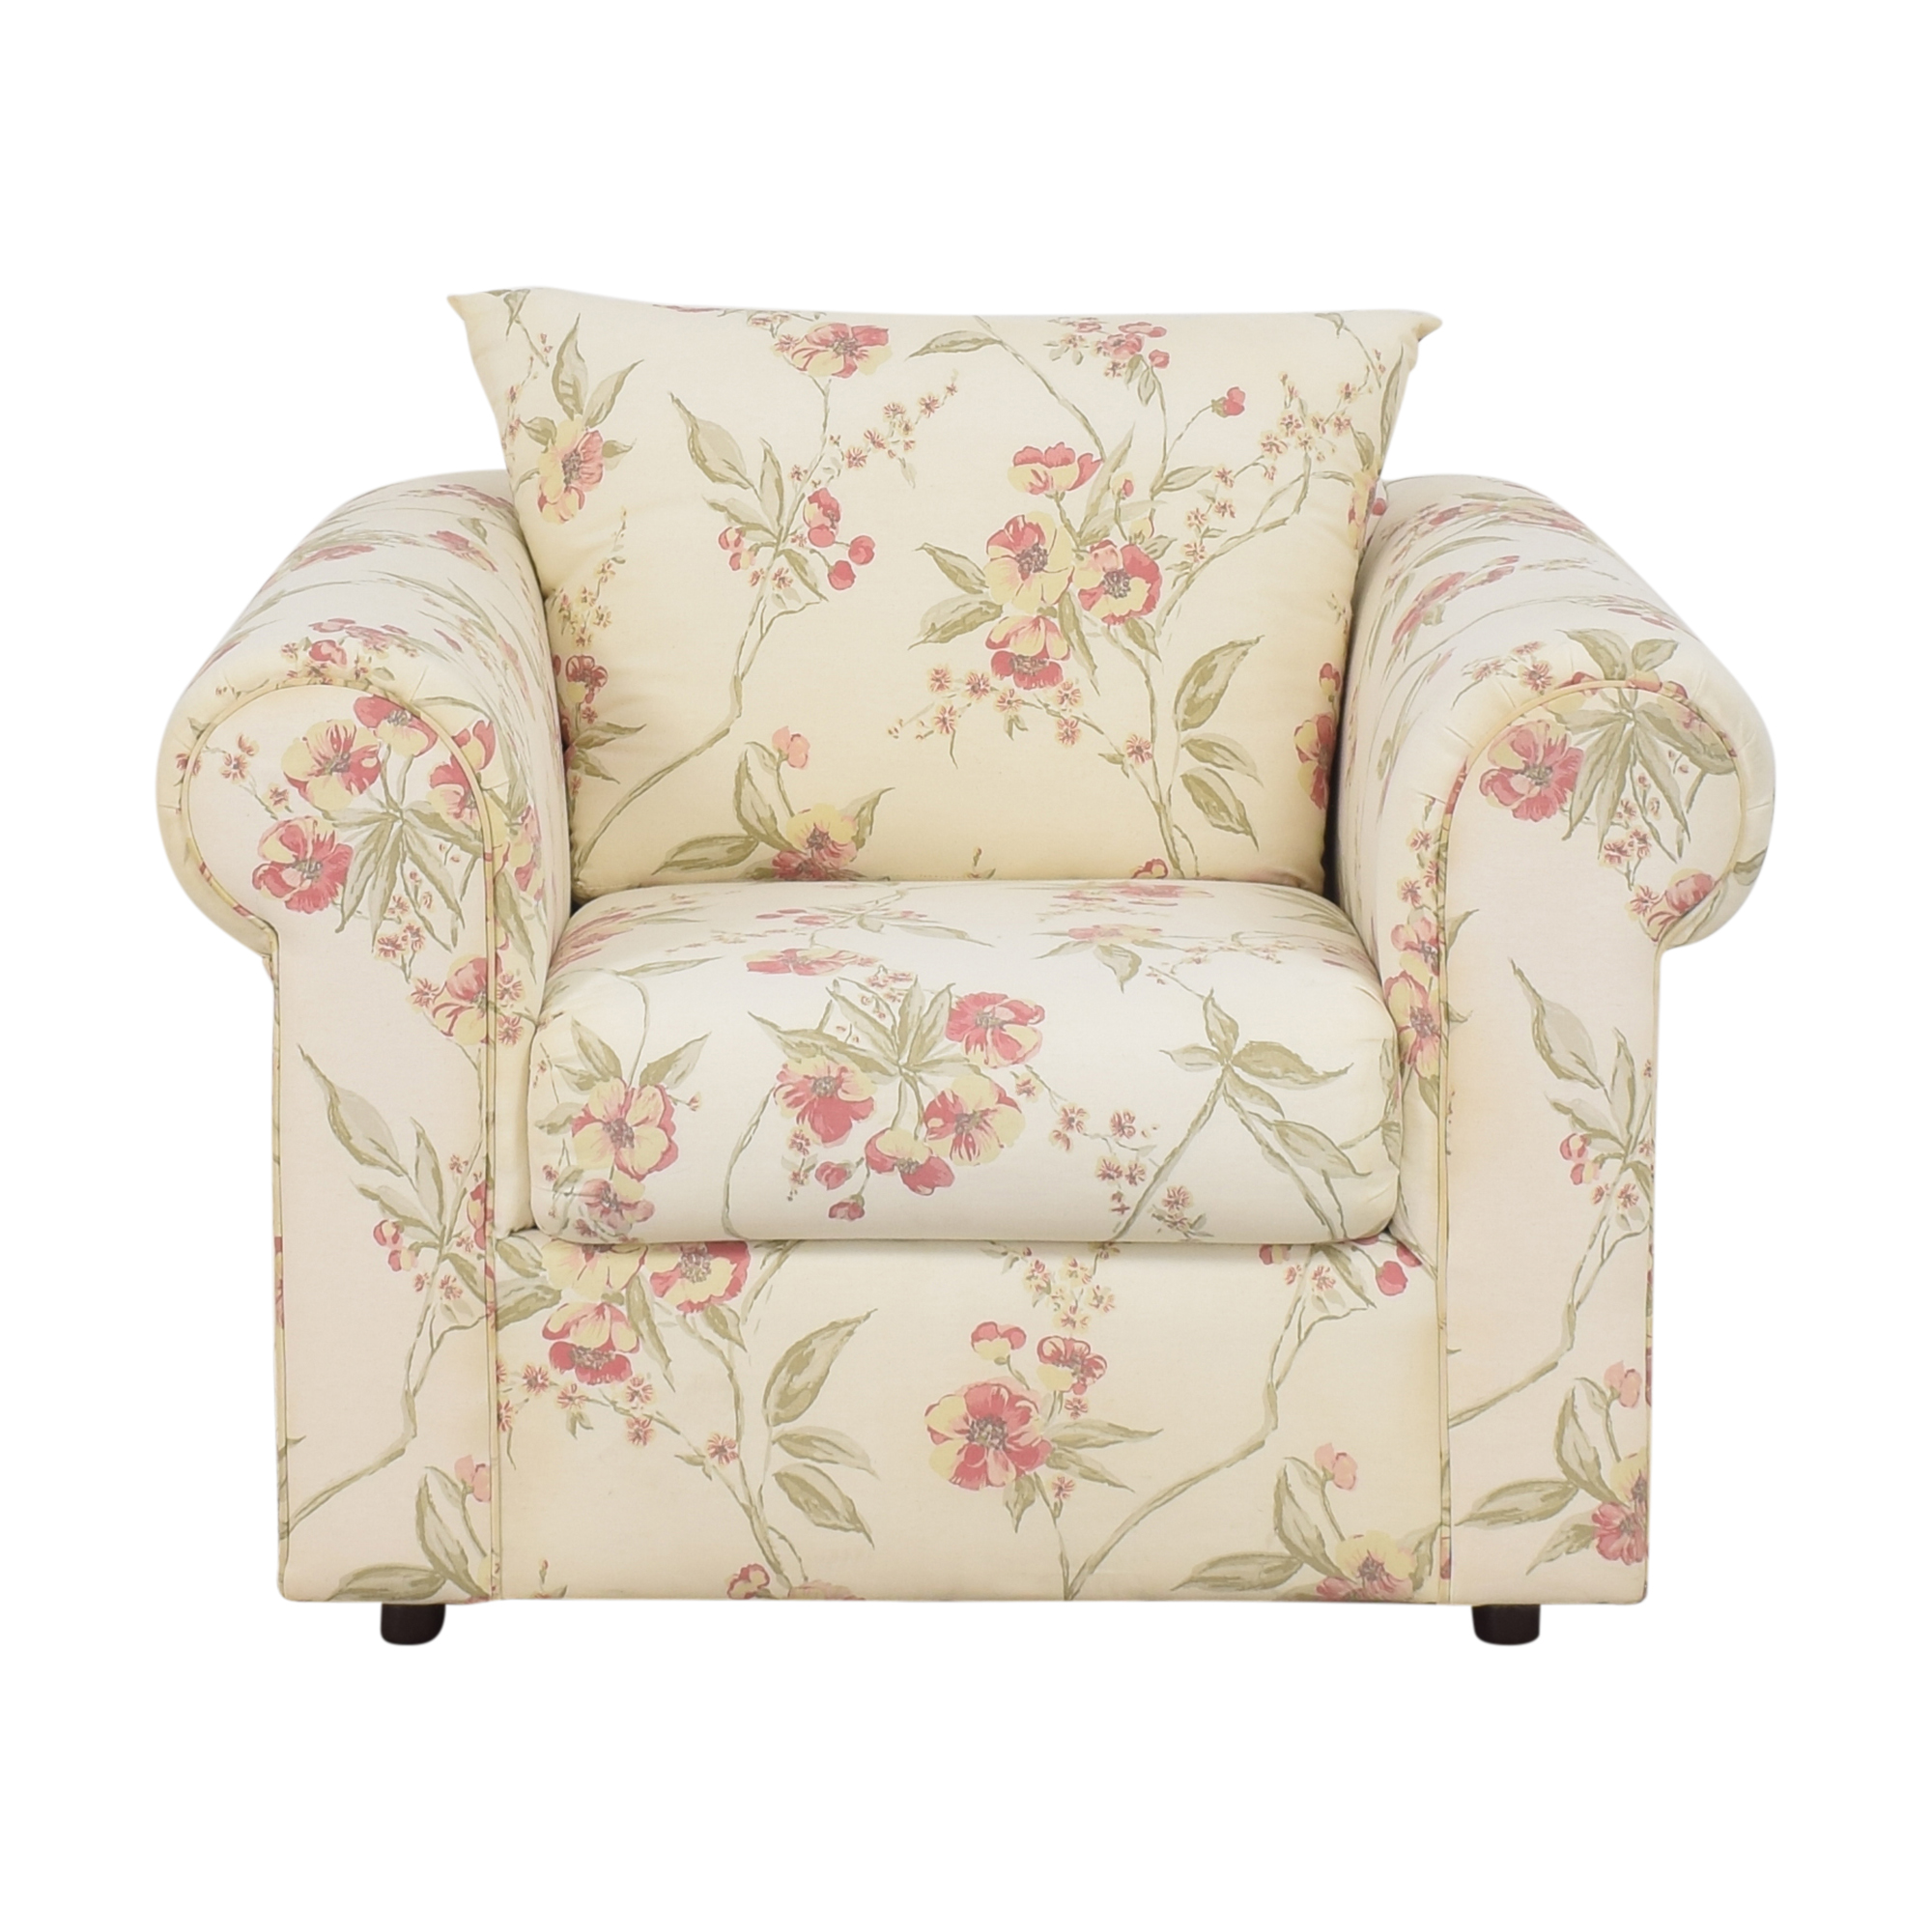 Ellis Home Furnishings Ellis Home Furnishings Floral Accent Chair on sale